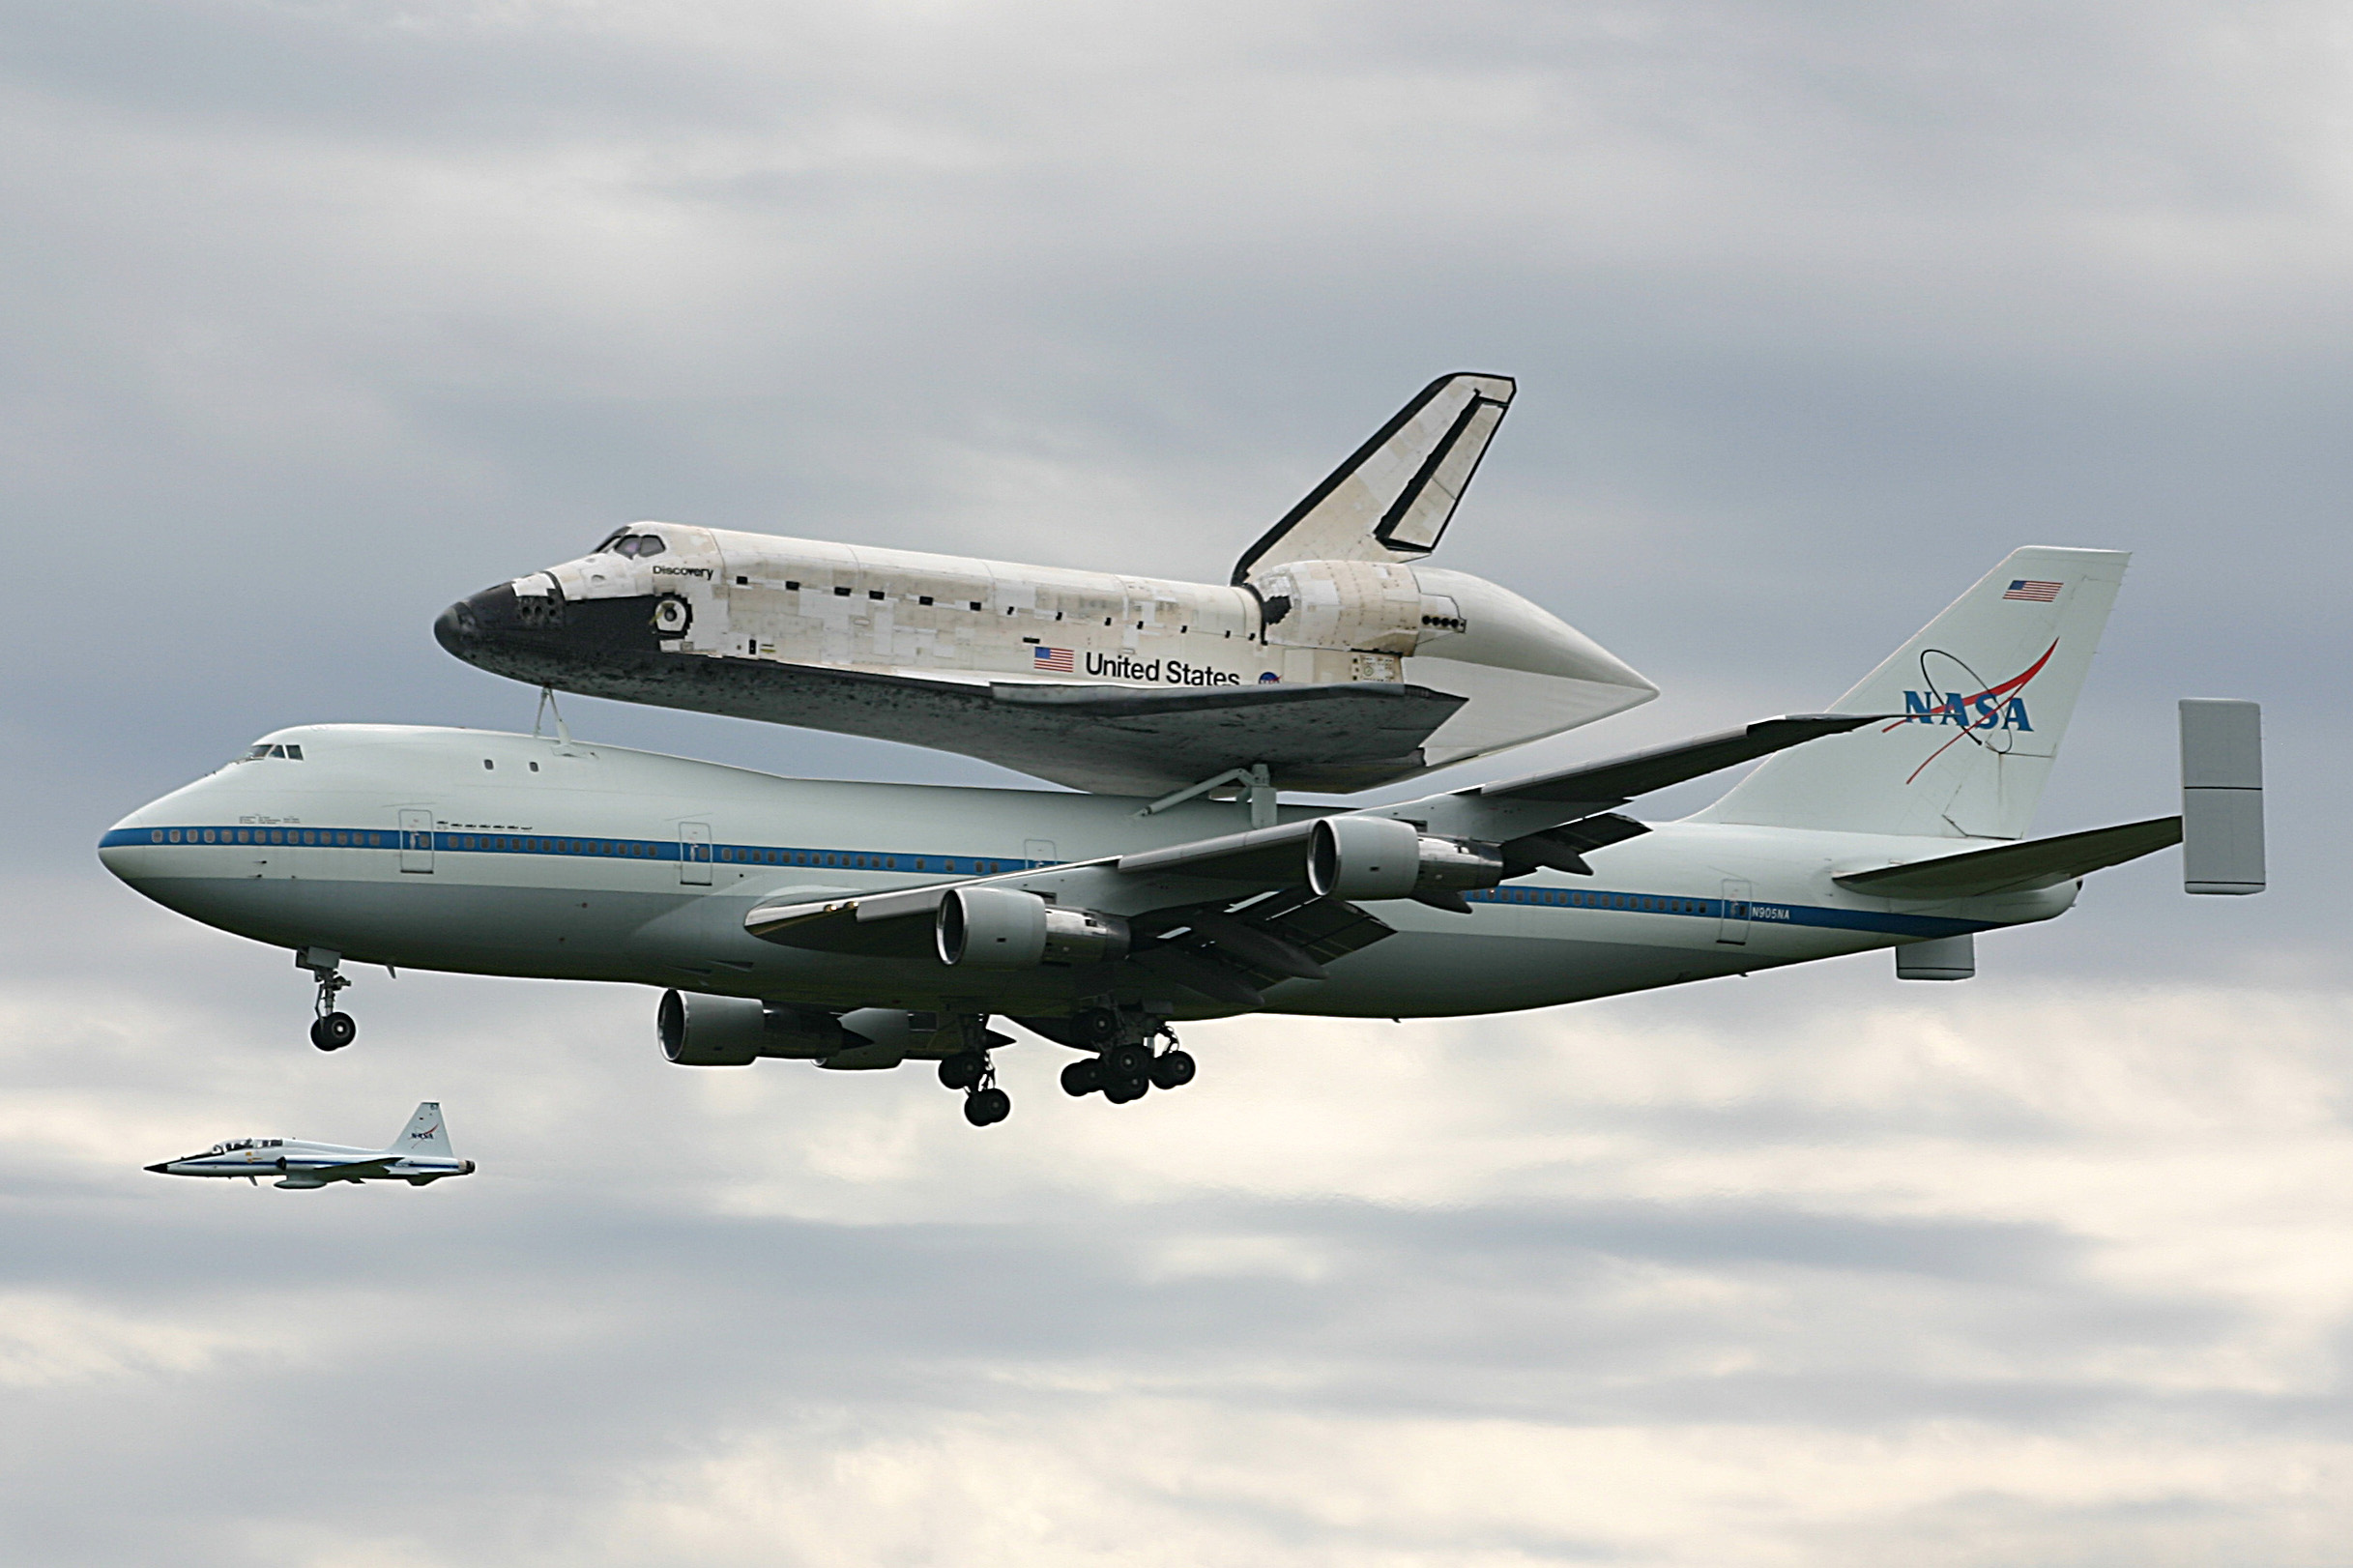 space shuttle discovery at dulles airport - photo #29